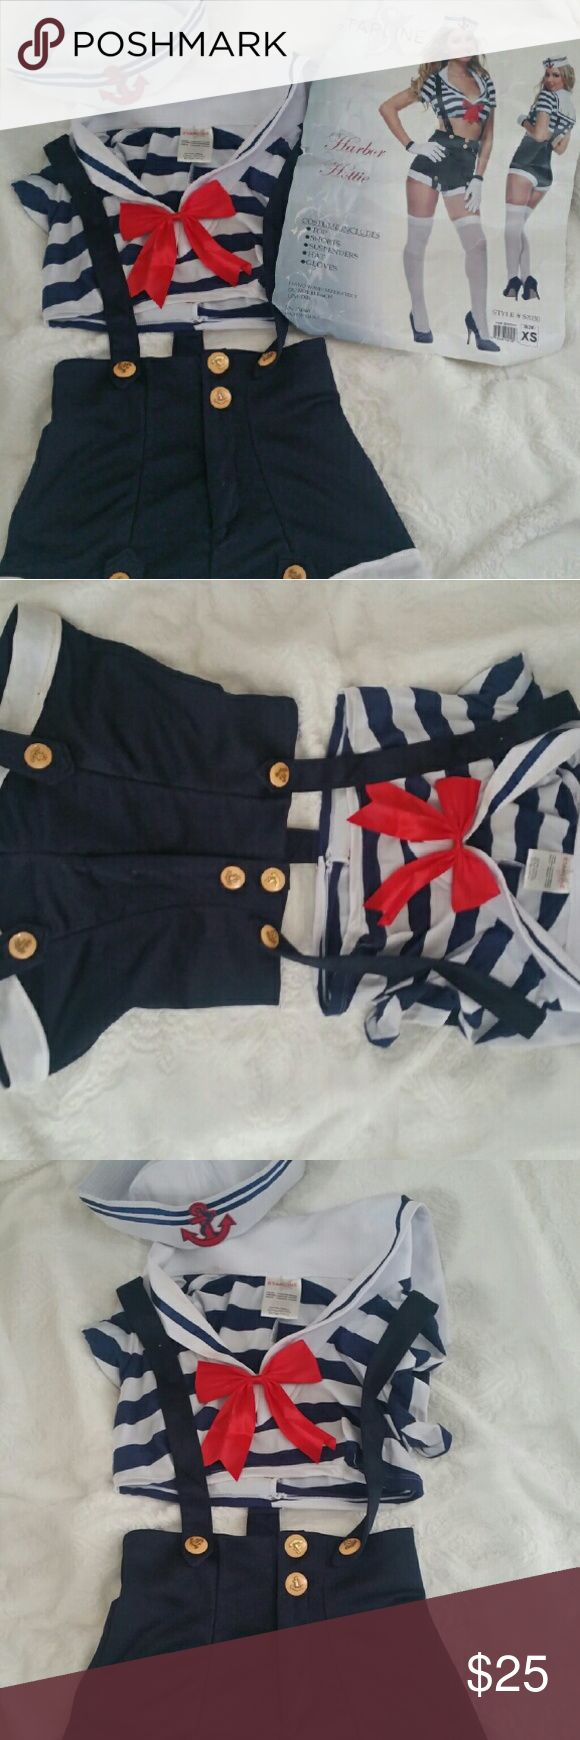 Sexy Sailor Costume Sexy Sailor Costume worn once  Includes : - Top - Shorts -Suspenders -Hat ** NO GLOVES** Starline Other